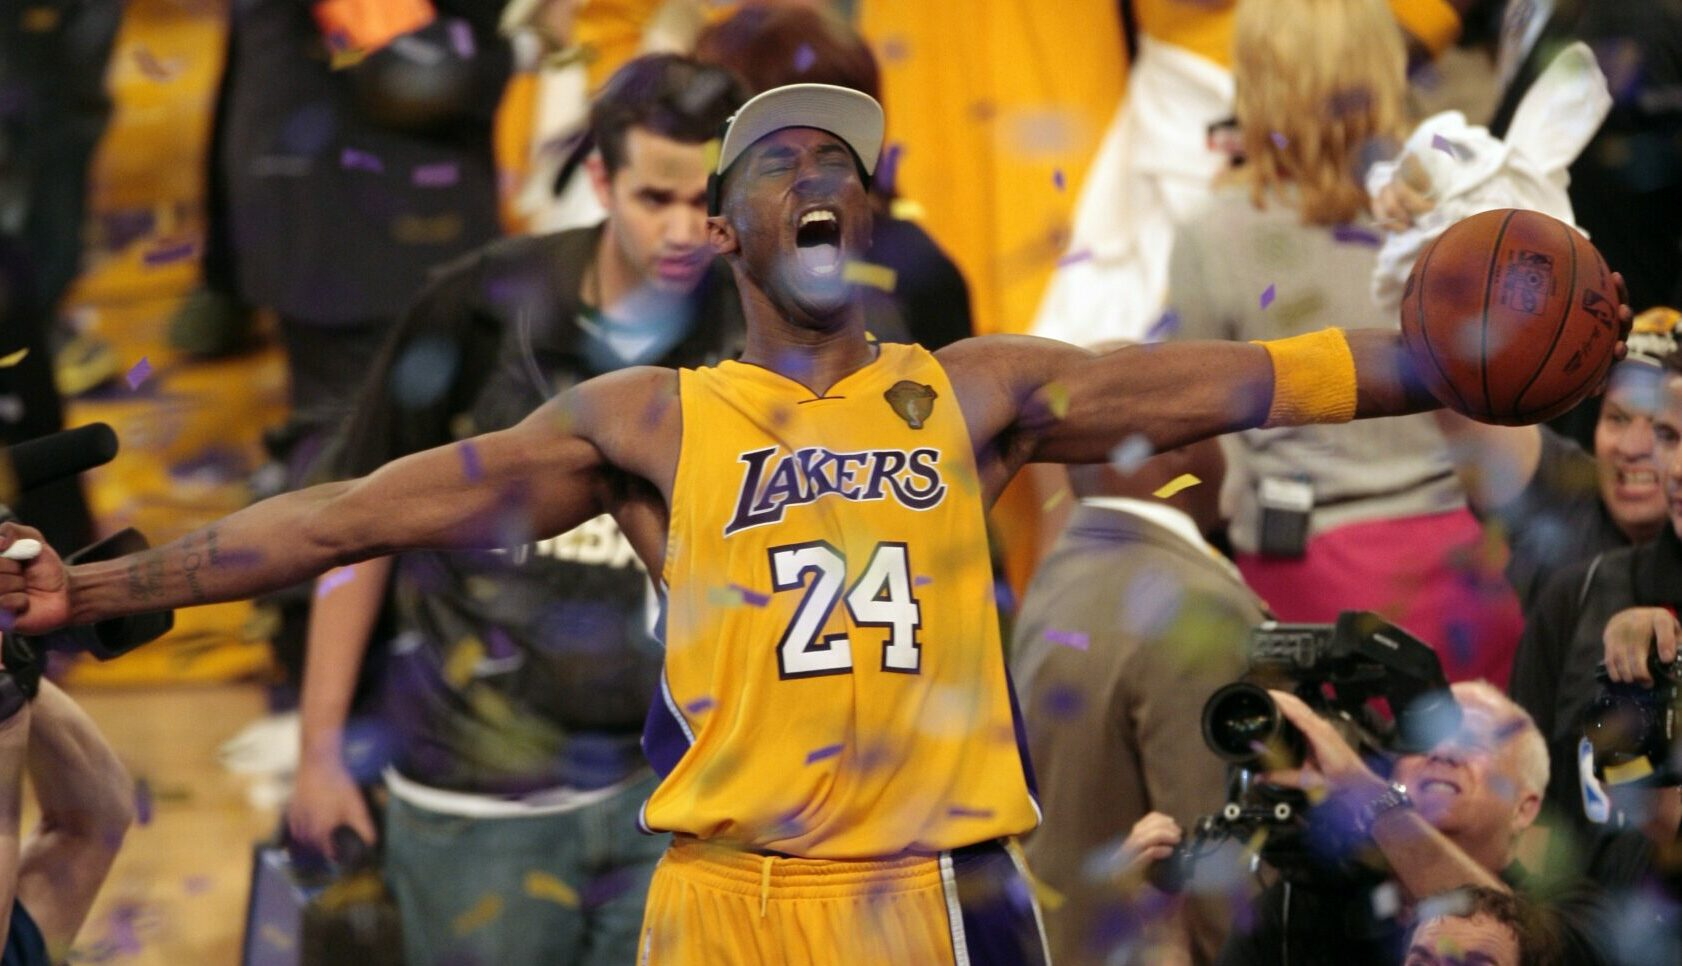 From start to end, deep hunger and desire to be the best drove Kobe Bryant